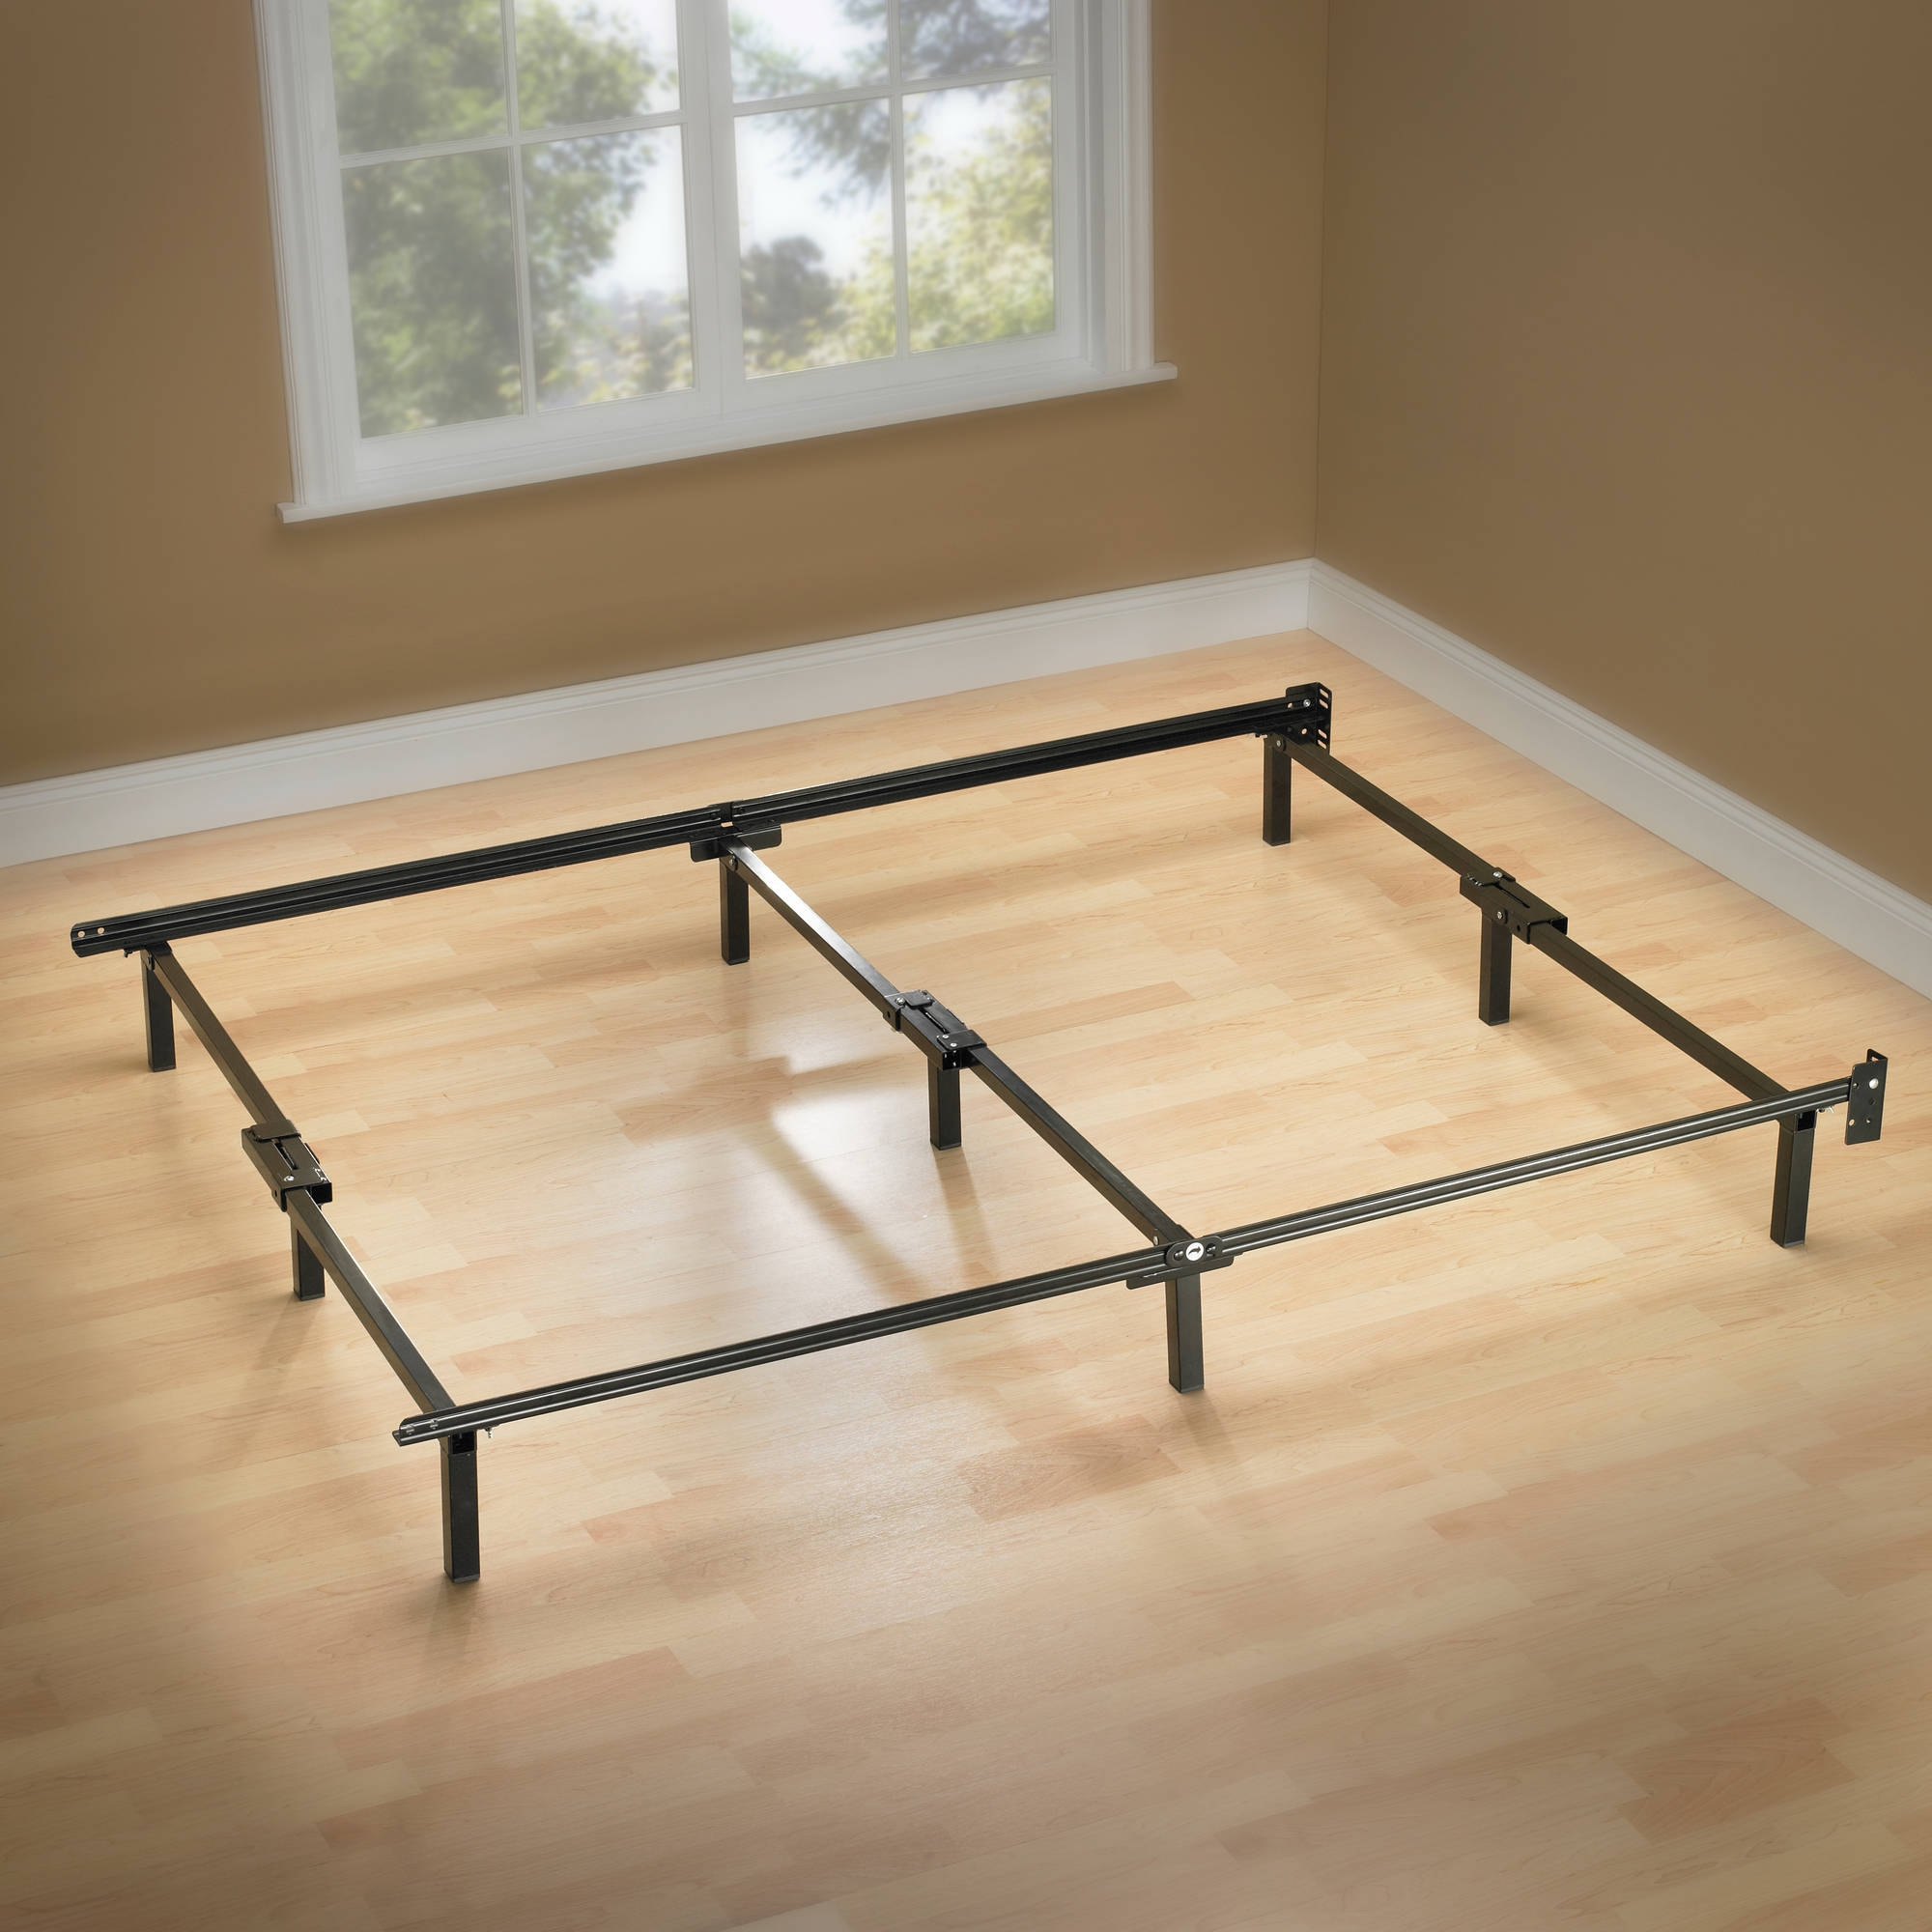 Pictures Of Metal Bed Frames